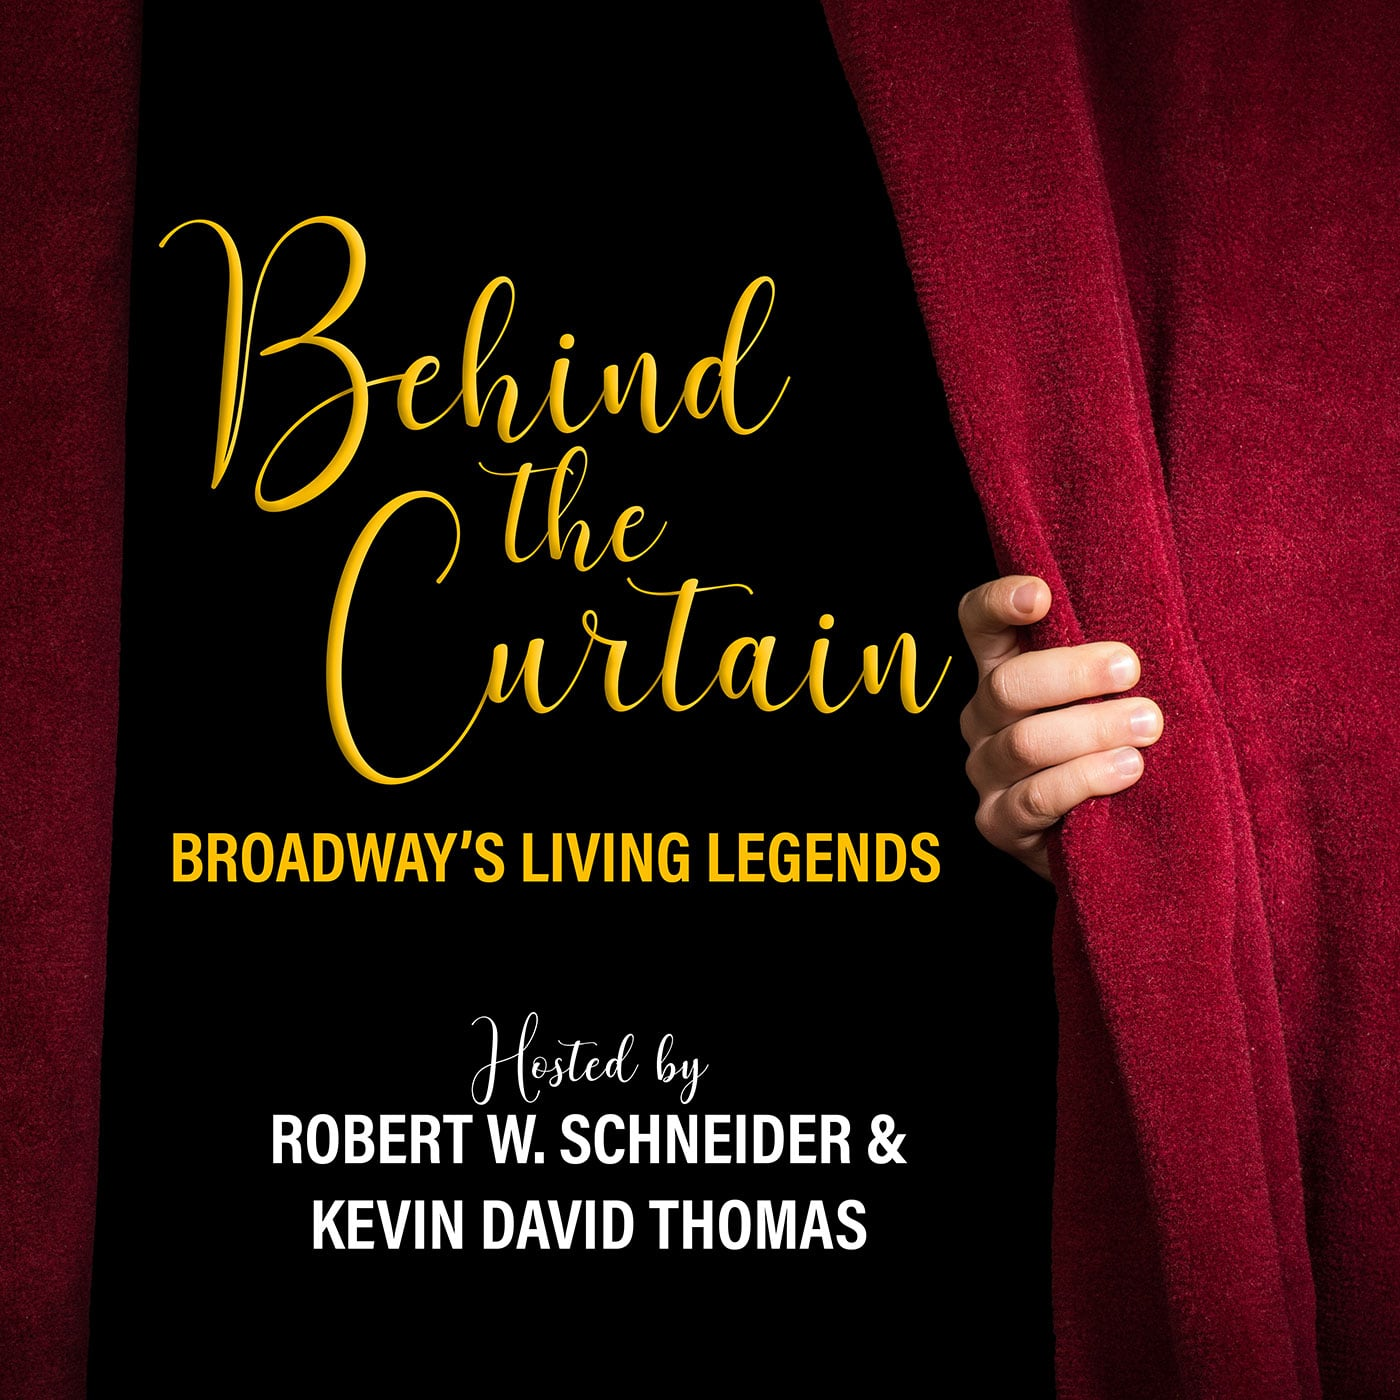 Behind the Curtain Broadway's Living Legends